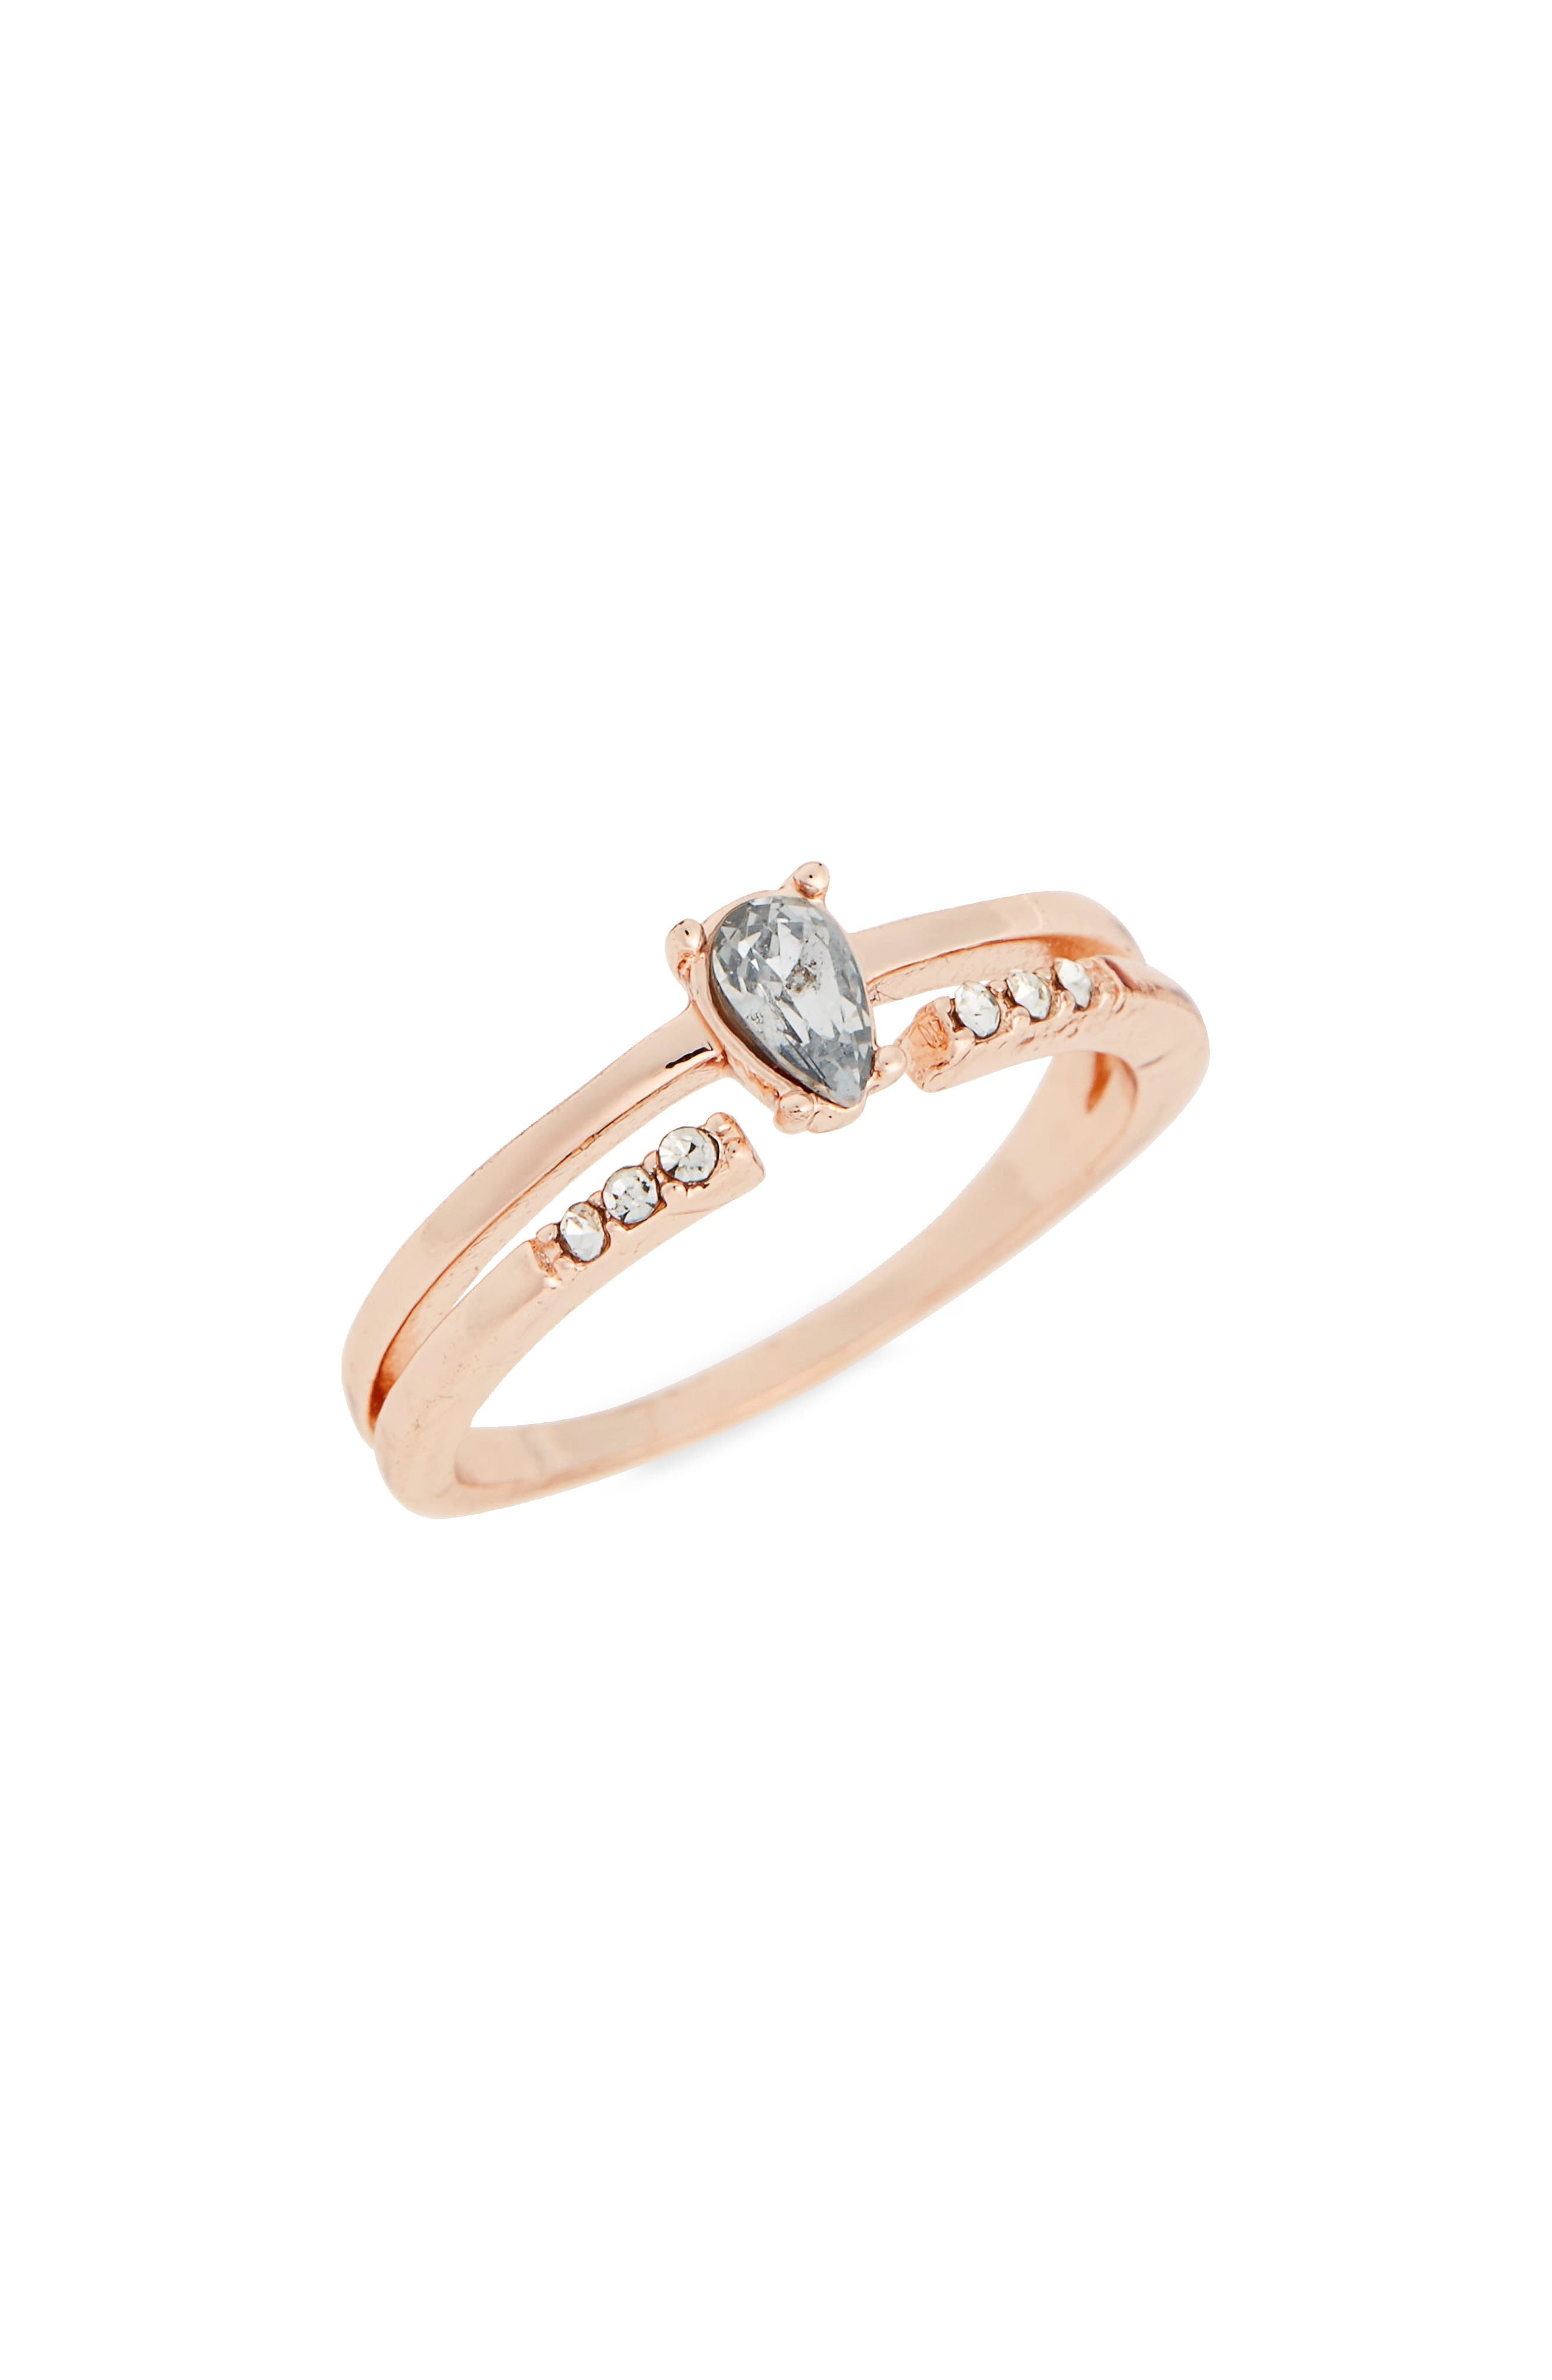 Fine Double Band Stone Ring,                         Main,                         color, Rose Gold